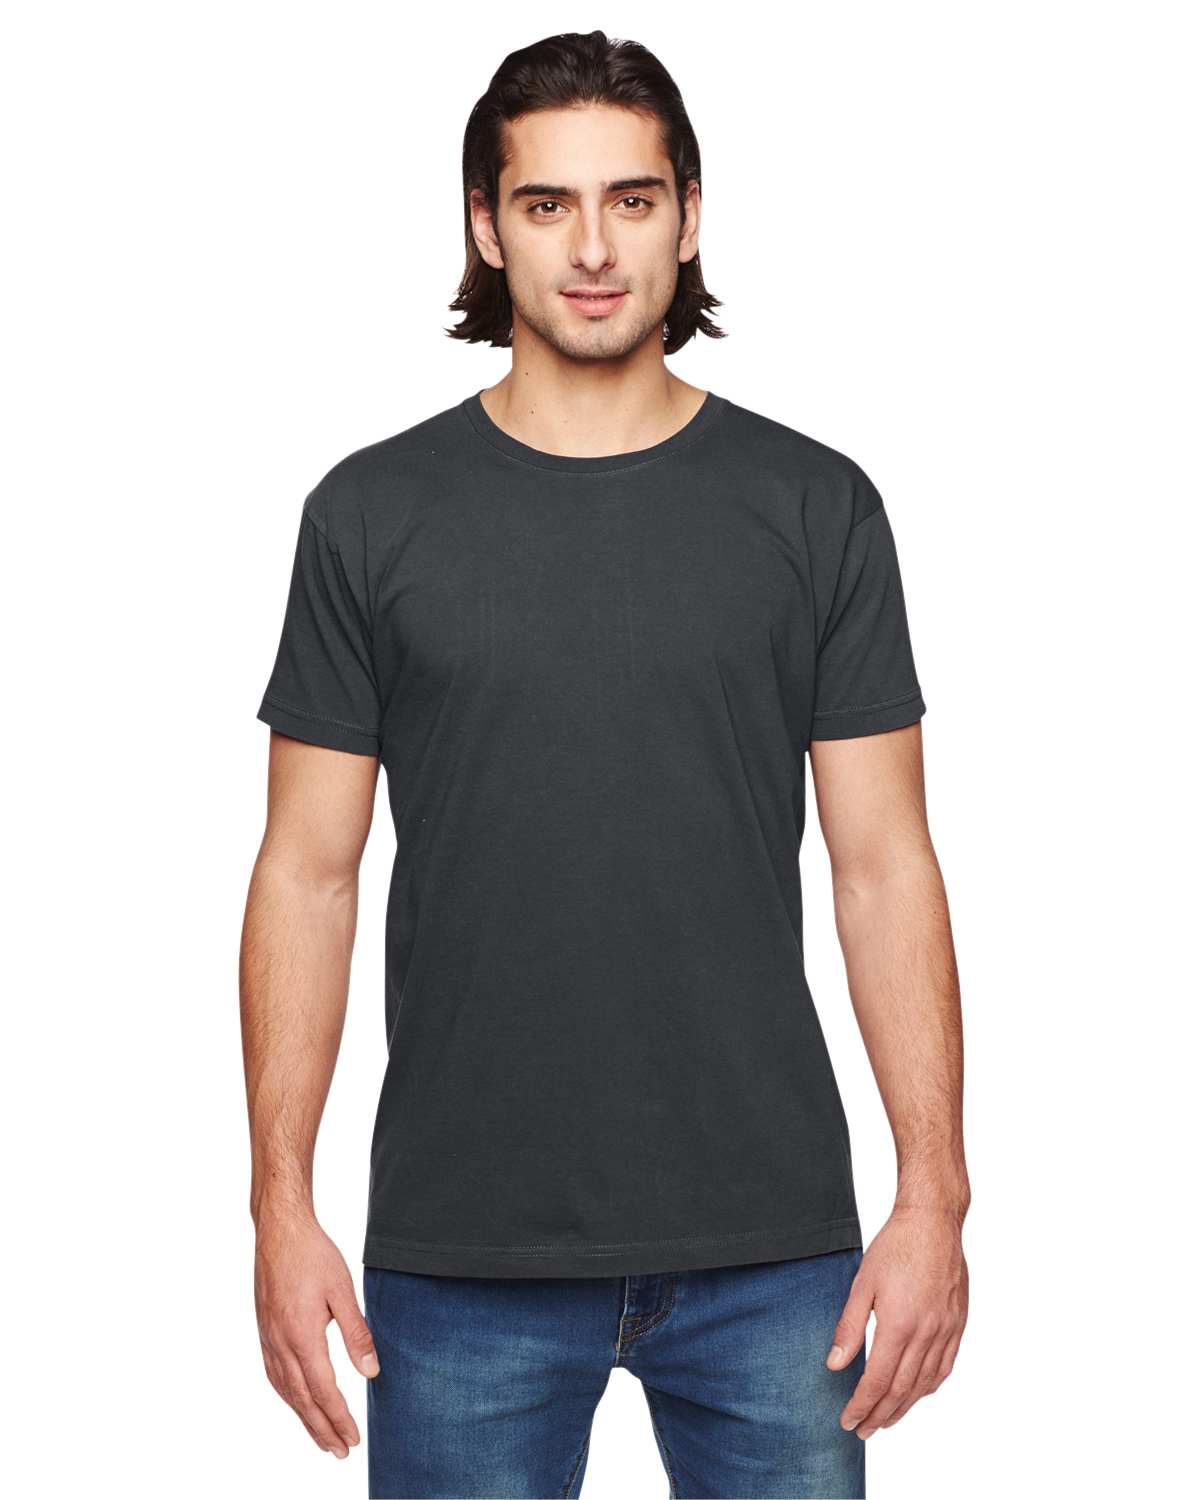 American Apparel 2011 Unisex Power Washed T Shirt